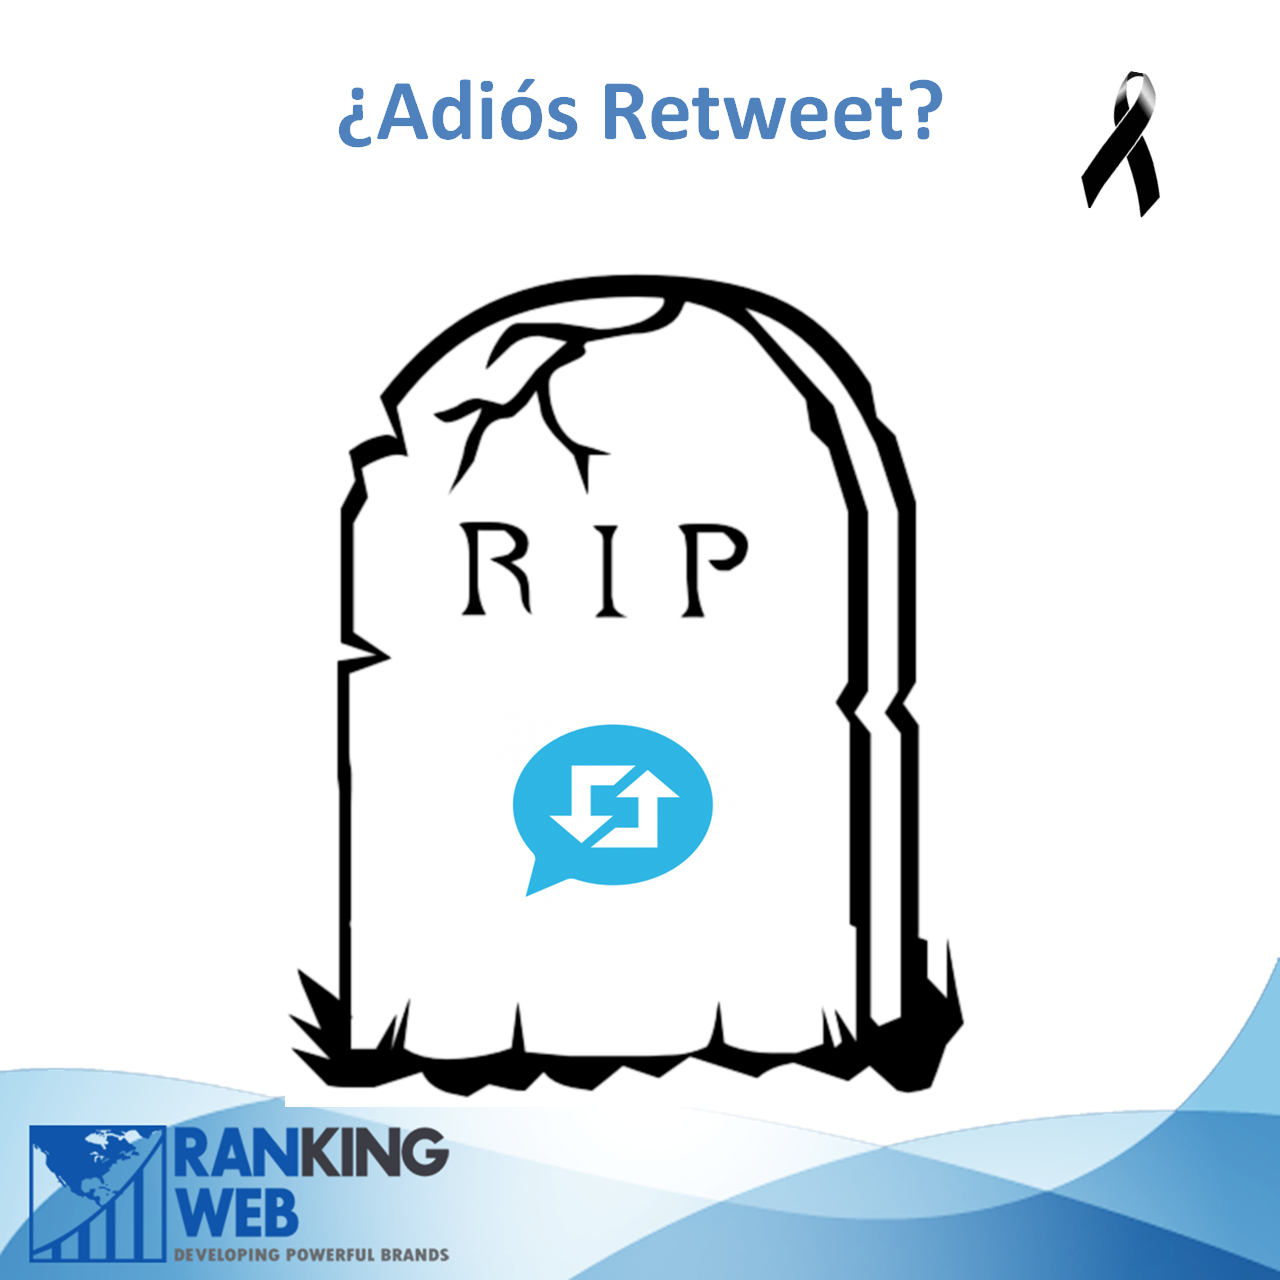 Pueden estar contados los días de #Retweeting. #Twitter ha estado probando la sustitución de #Retweet con #Compartir.